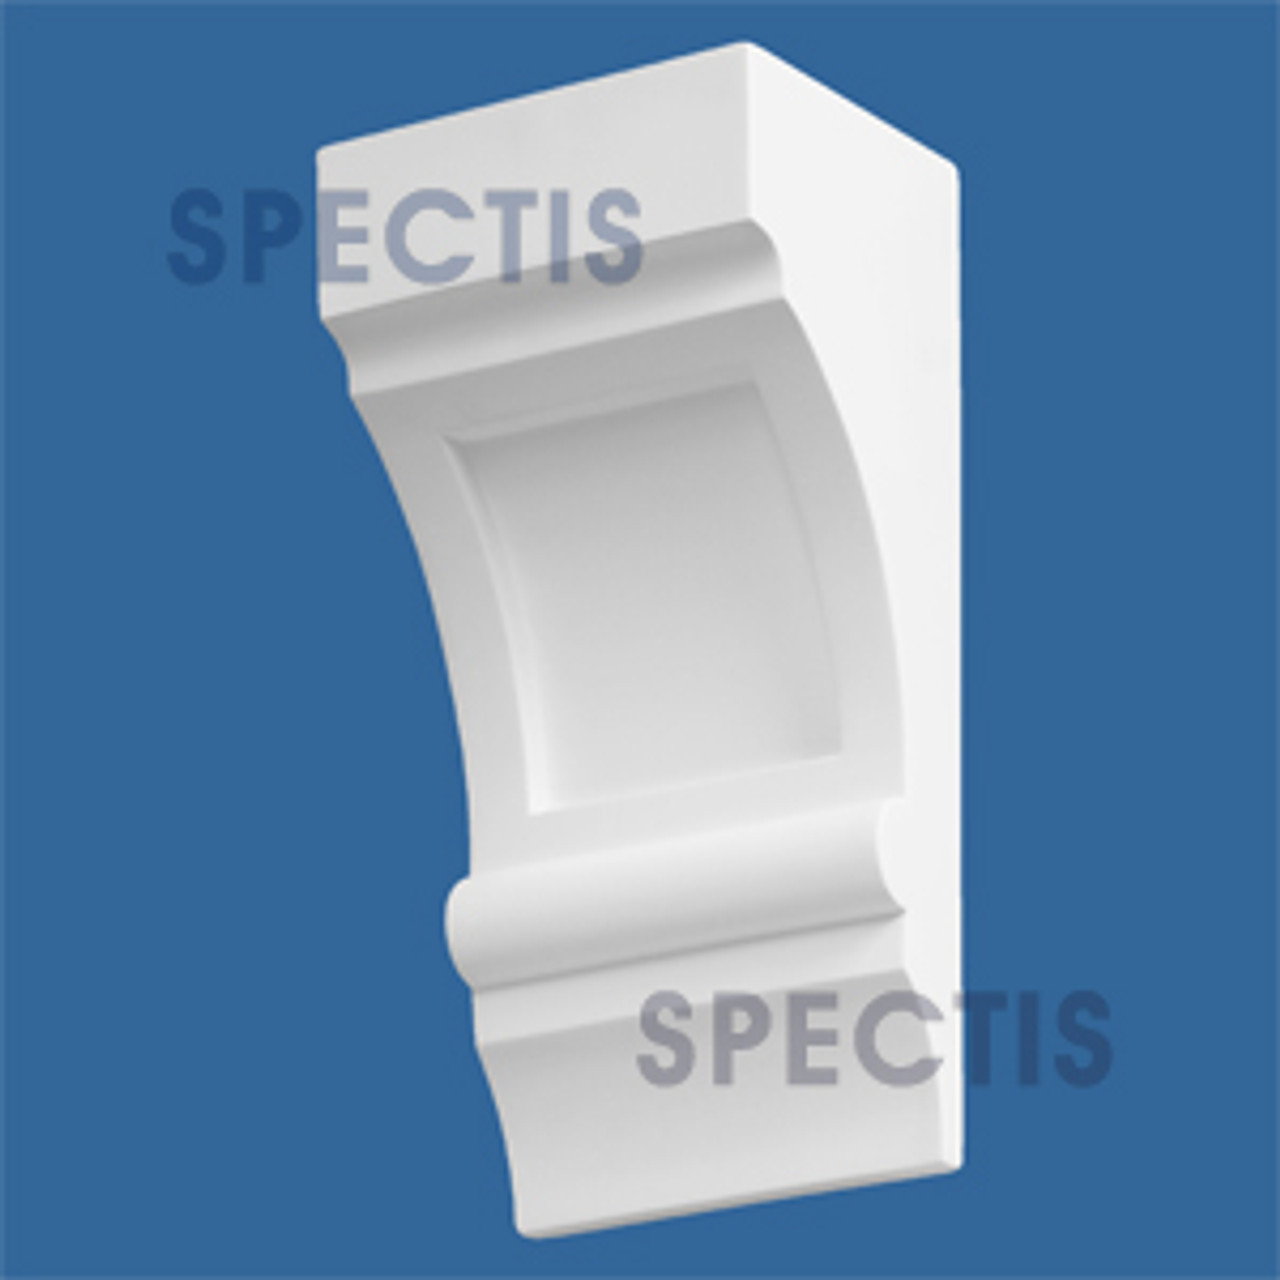 """BL2412R-8/12 Spectis Eave Block or Bracket 7""""W x 14""""H x 5.5"""" Projection"""